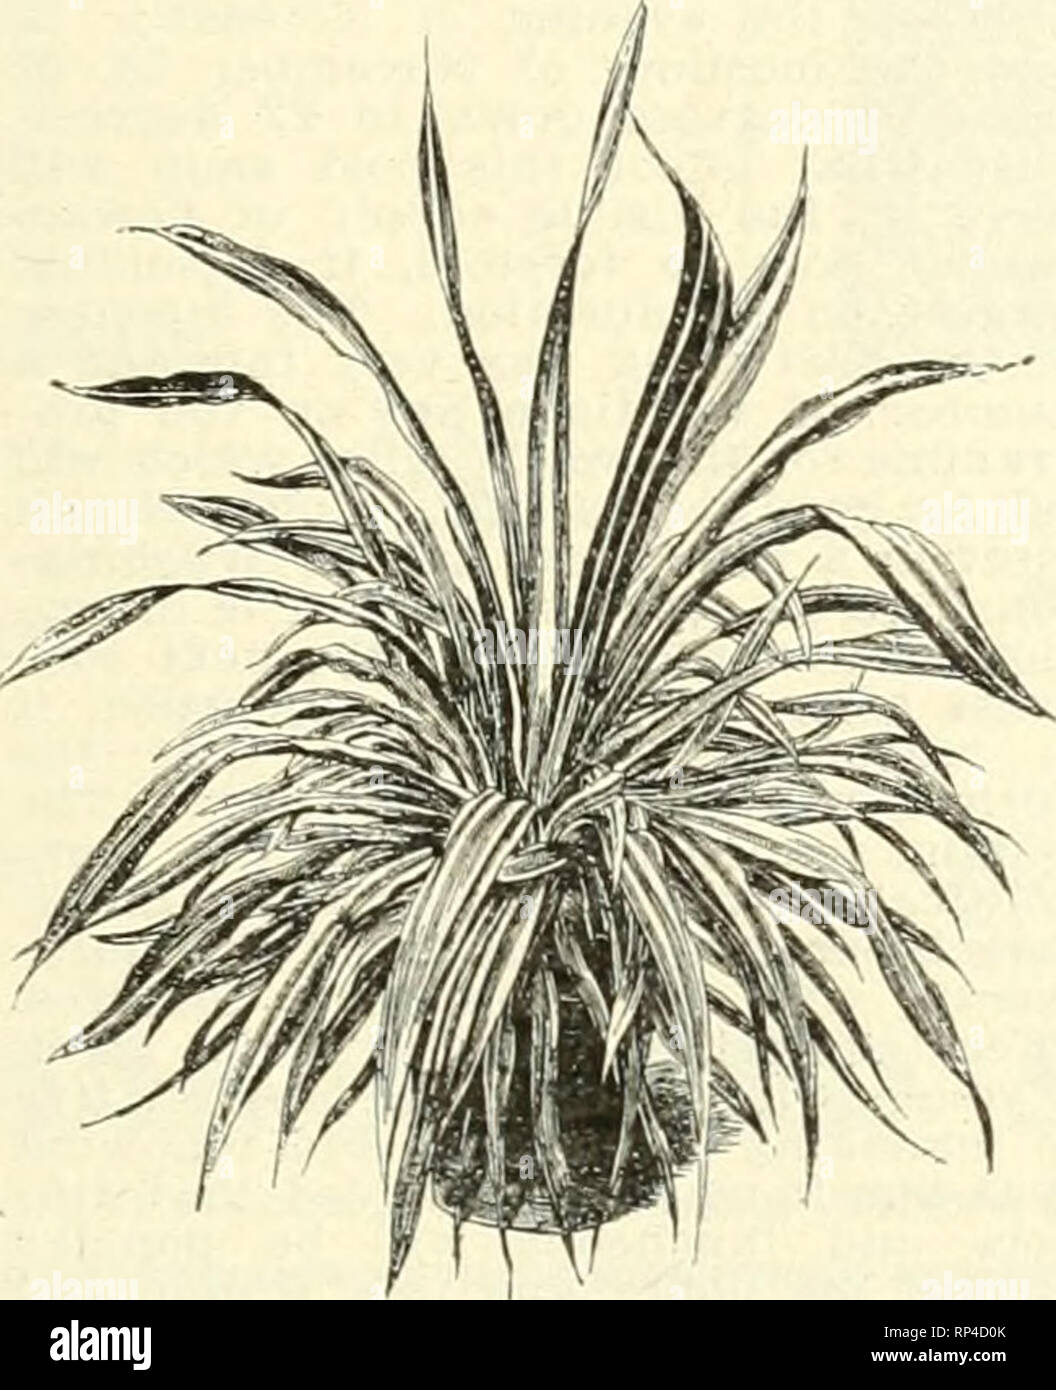 ". The American florist : a weekly journal for the trade. Floriculture; Florists. Pteris Serrulata. Order Today and Bedding Plants ACHYRANTHES—Rooted Cuttings. Per 1000 Mftallica $ 6.00 V. de Bailey 10.00 Lindenii 6.00 W.arsoewiczii 6.00 ACHYRANTHES—2-Inch. Per 100 I', dc"" Kaili'V $2.60 >U'tallica 8.00 I>indenli 2.00 War.scewic'/ii 2.00 AGERATUM—2-Inch. Per 100 Stella Giiniey $2.00 rrince.ss Pauline 2.00 COLEUS—Rooted Cuttings. Per 1000 I :oldeu Bedder $6.00 Beckwiths Gem 6.00 Verschaffeltii 6.00 COLEUS—2-Inch. Per 100 I'lisler, red and yellow $2.00 Beckwiths Gem 2.00 (Joldeu Bedder  - Stock Image"